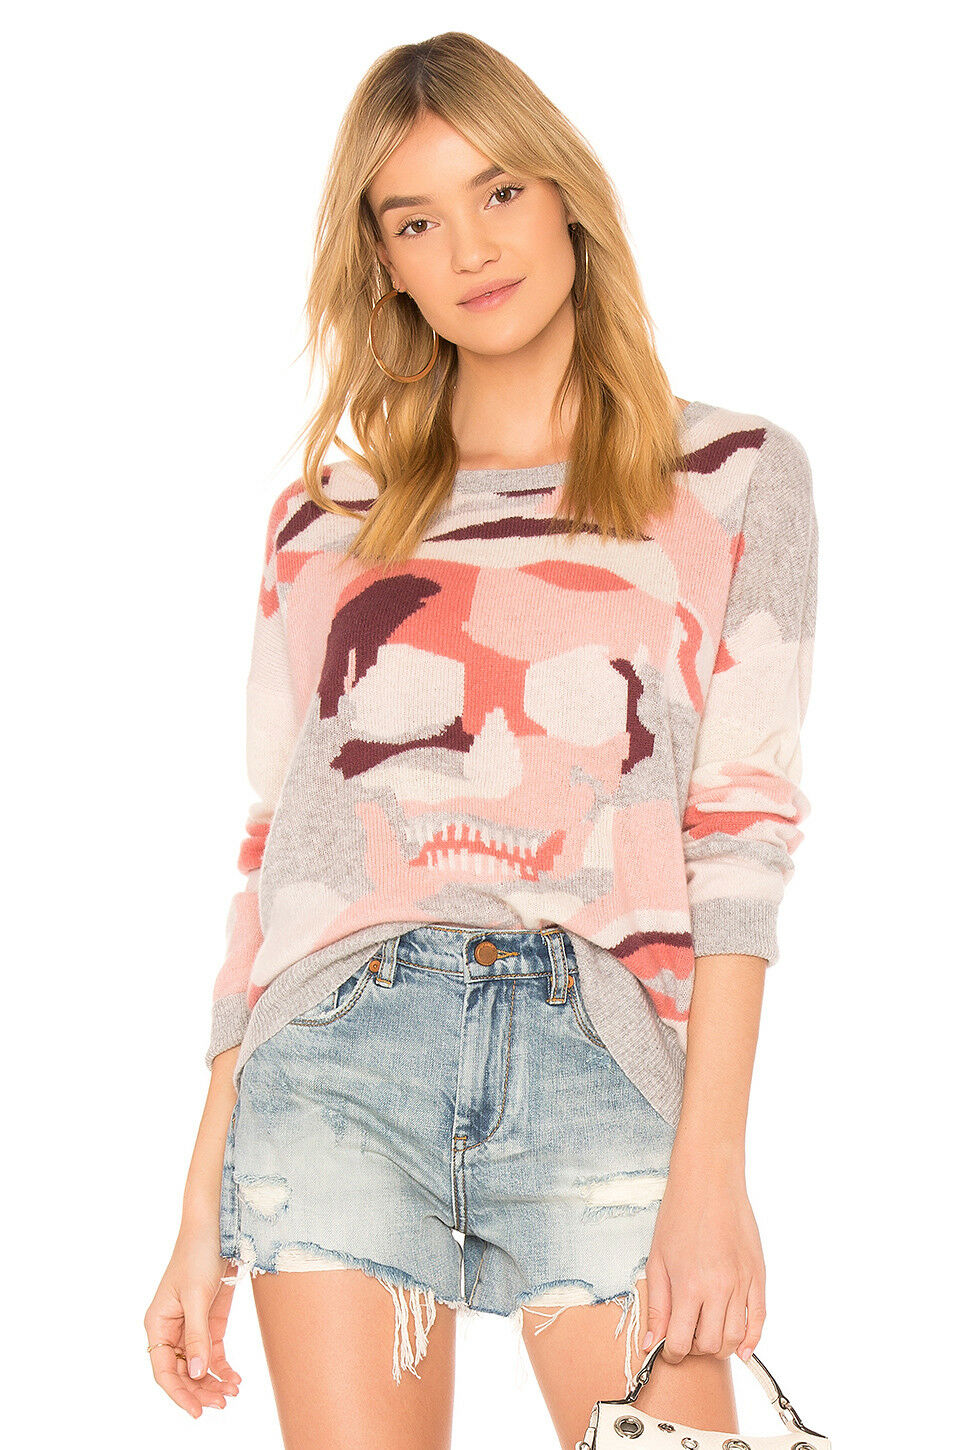 NWT Skull Cashmere Arden Camo Skull Cashmere Sweater Sunkissed Size XS,S,M